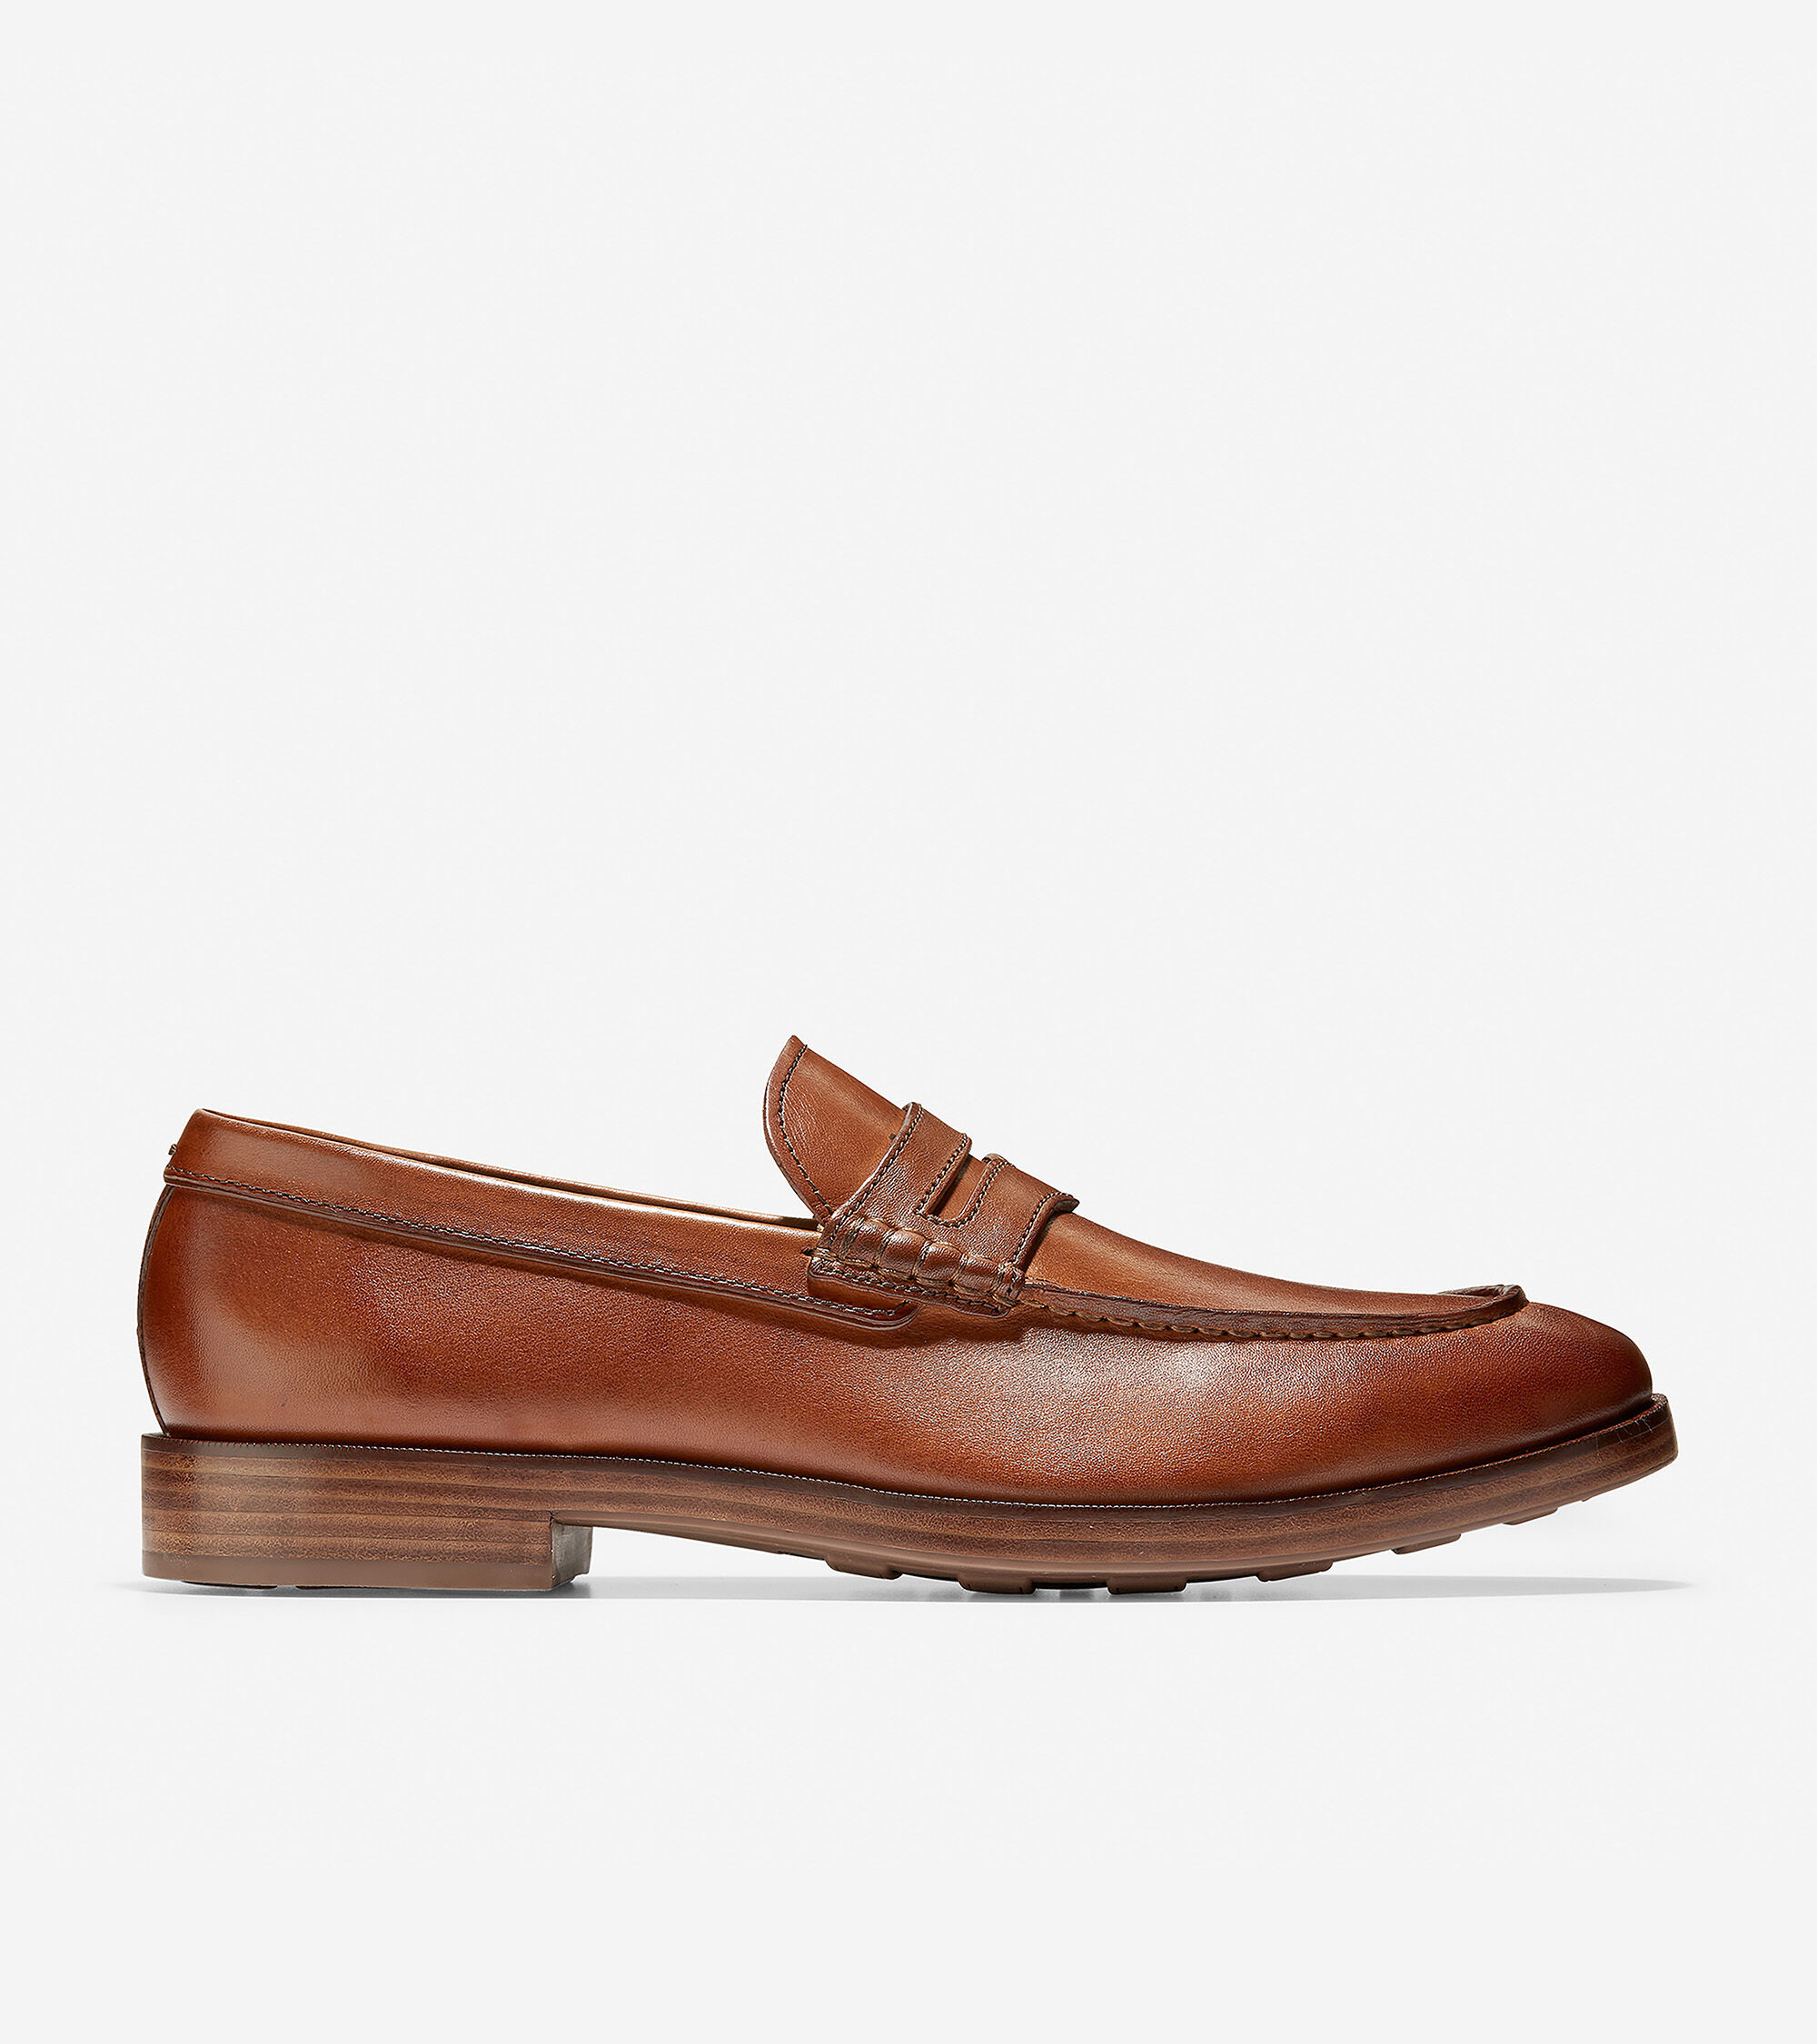 5af093034e8 Men s Hamilton Grand Penny Loafers in British Tan